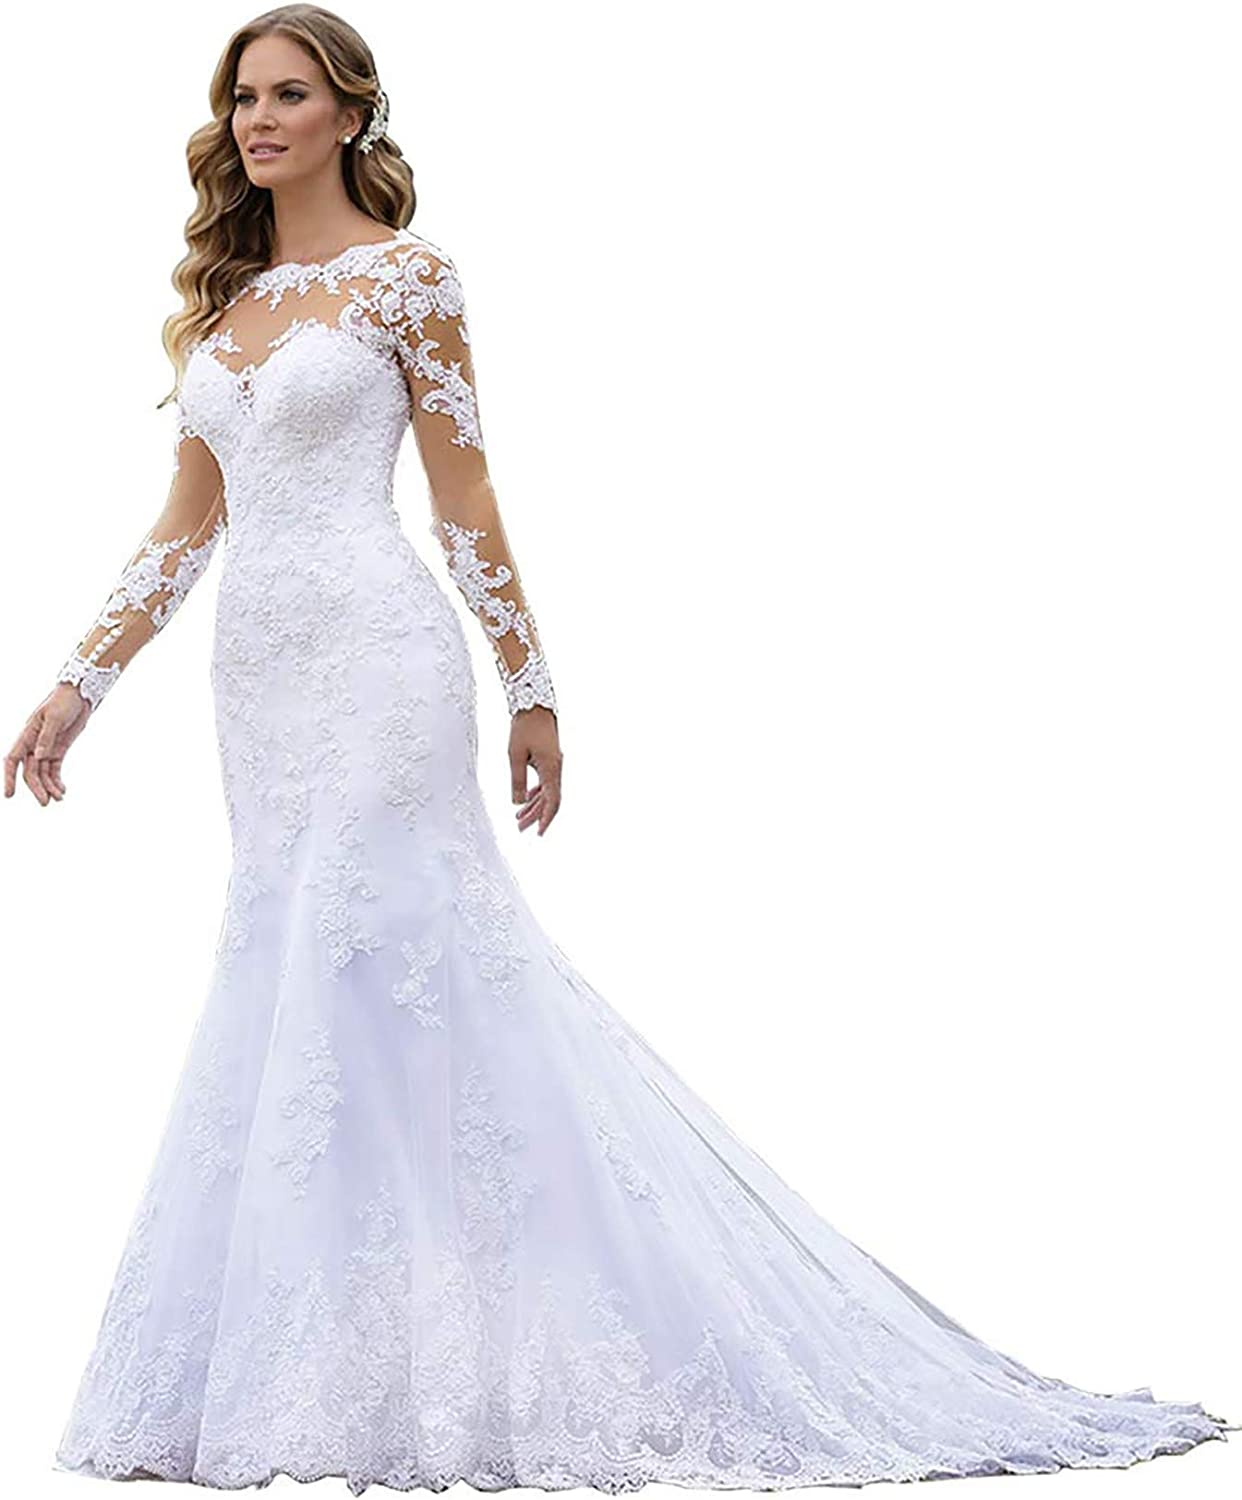 YnanLi Dress Women's A Line Lace Tulle Wedding Dresses Long for Bride 2021 Open Back Bridal Prom Gowns